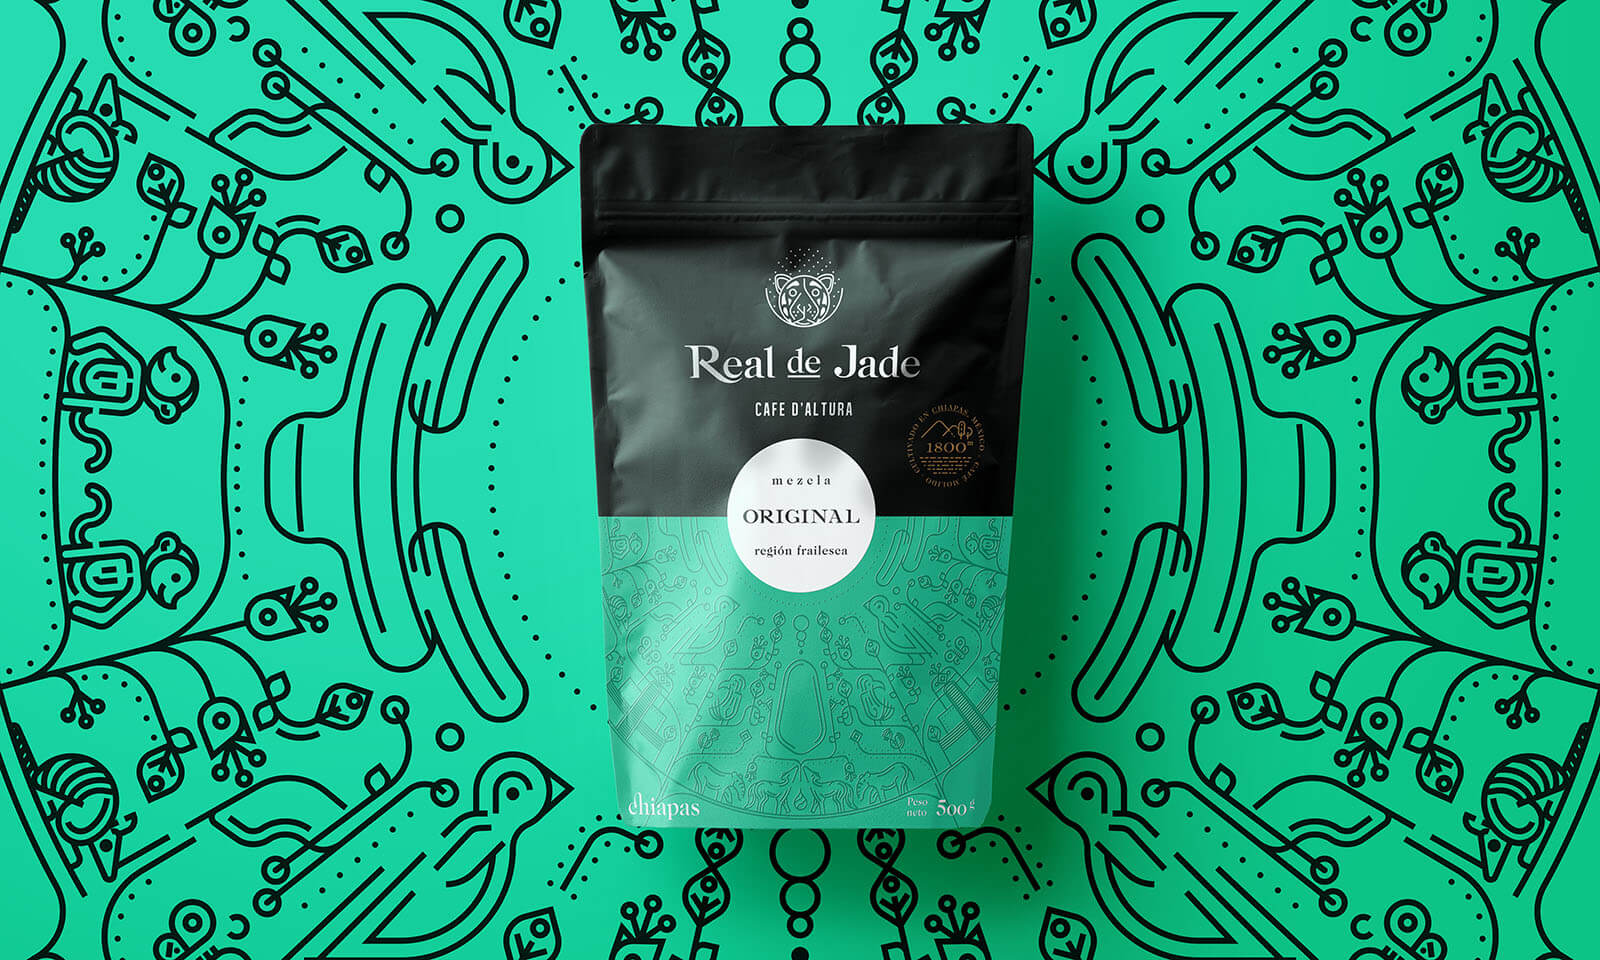 Real de Jade // Coffee Packaging